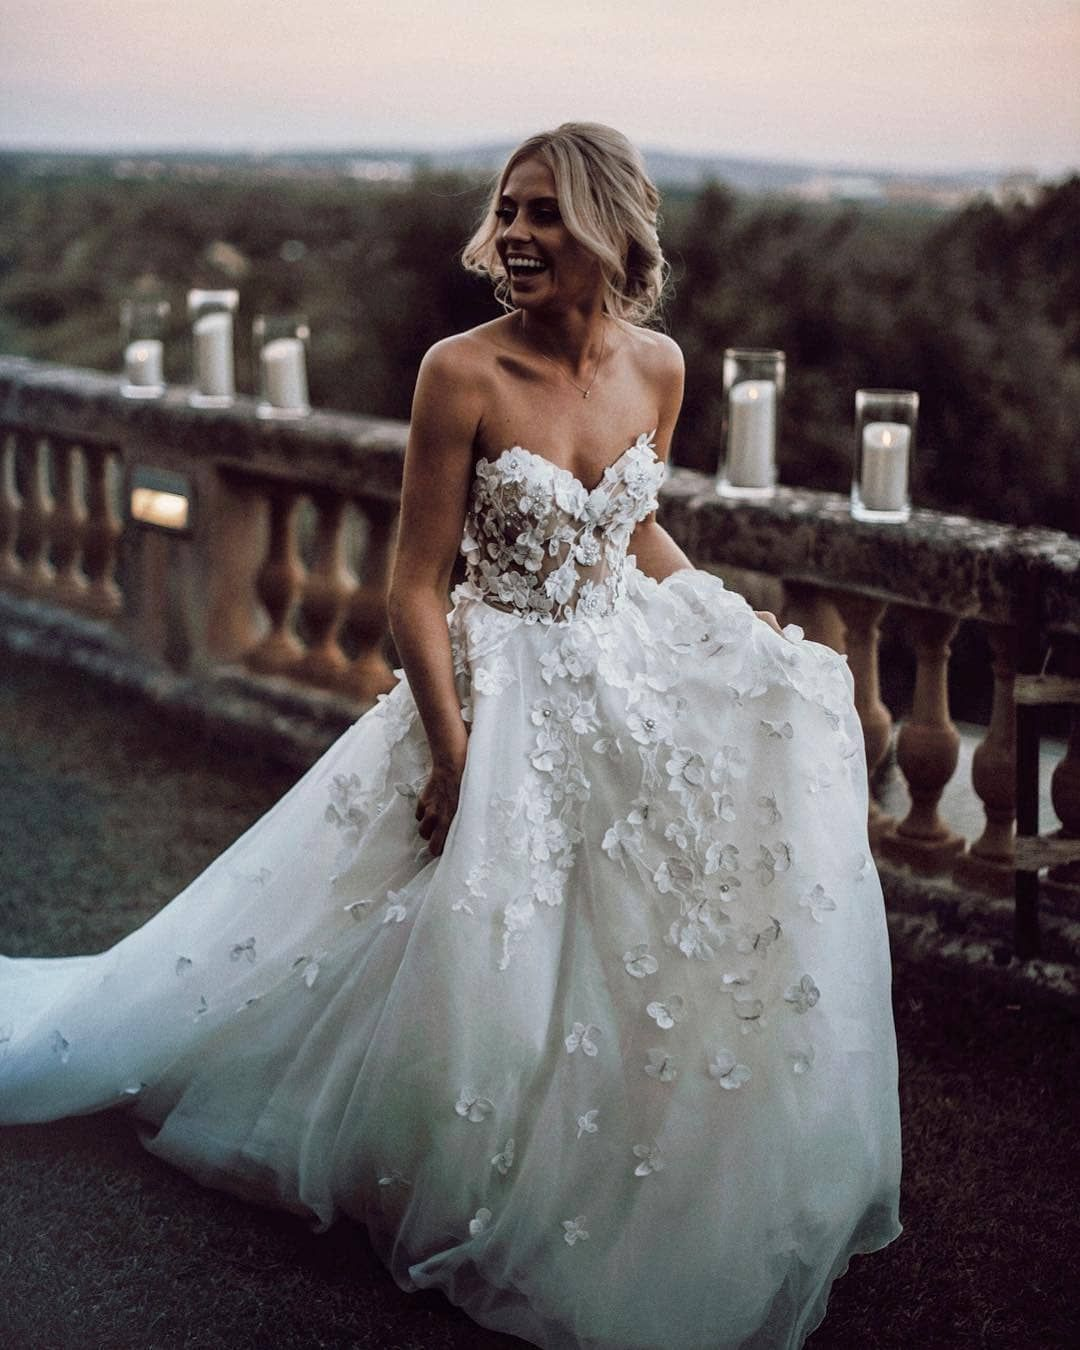 This Brides Dress Is Breathtaking Photography By Tali